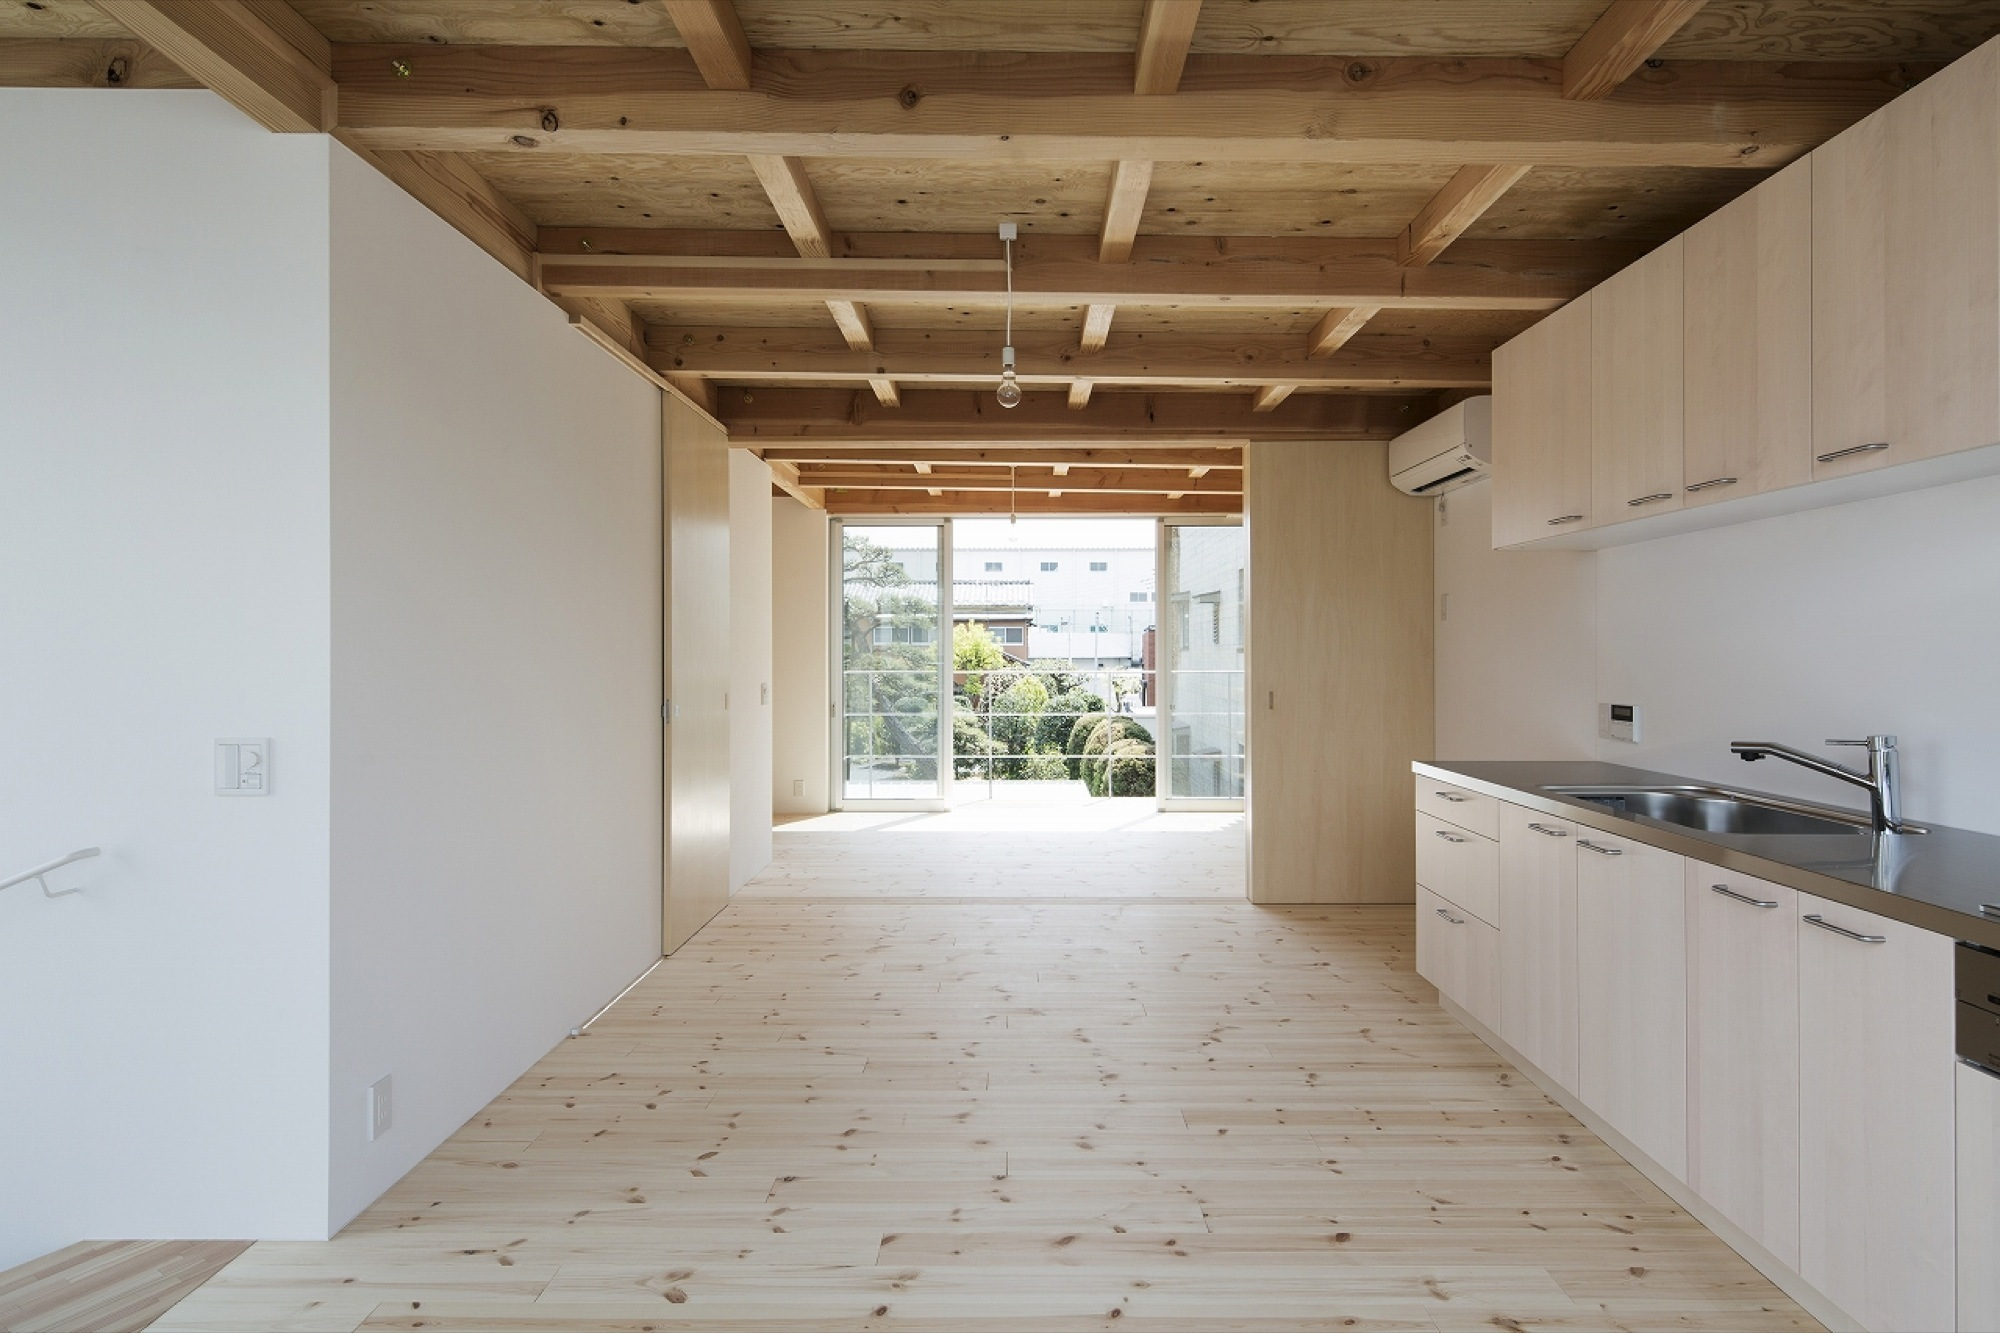 Japanese Kitchen Design For Small Space